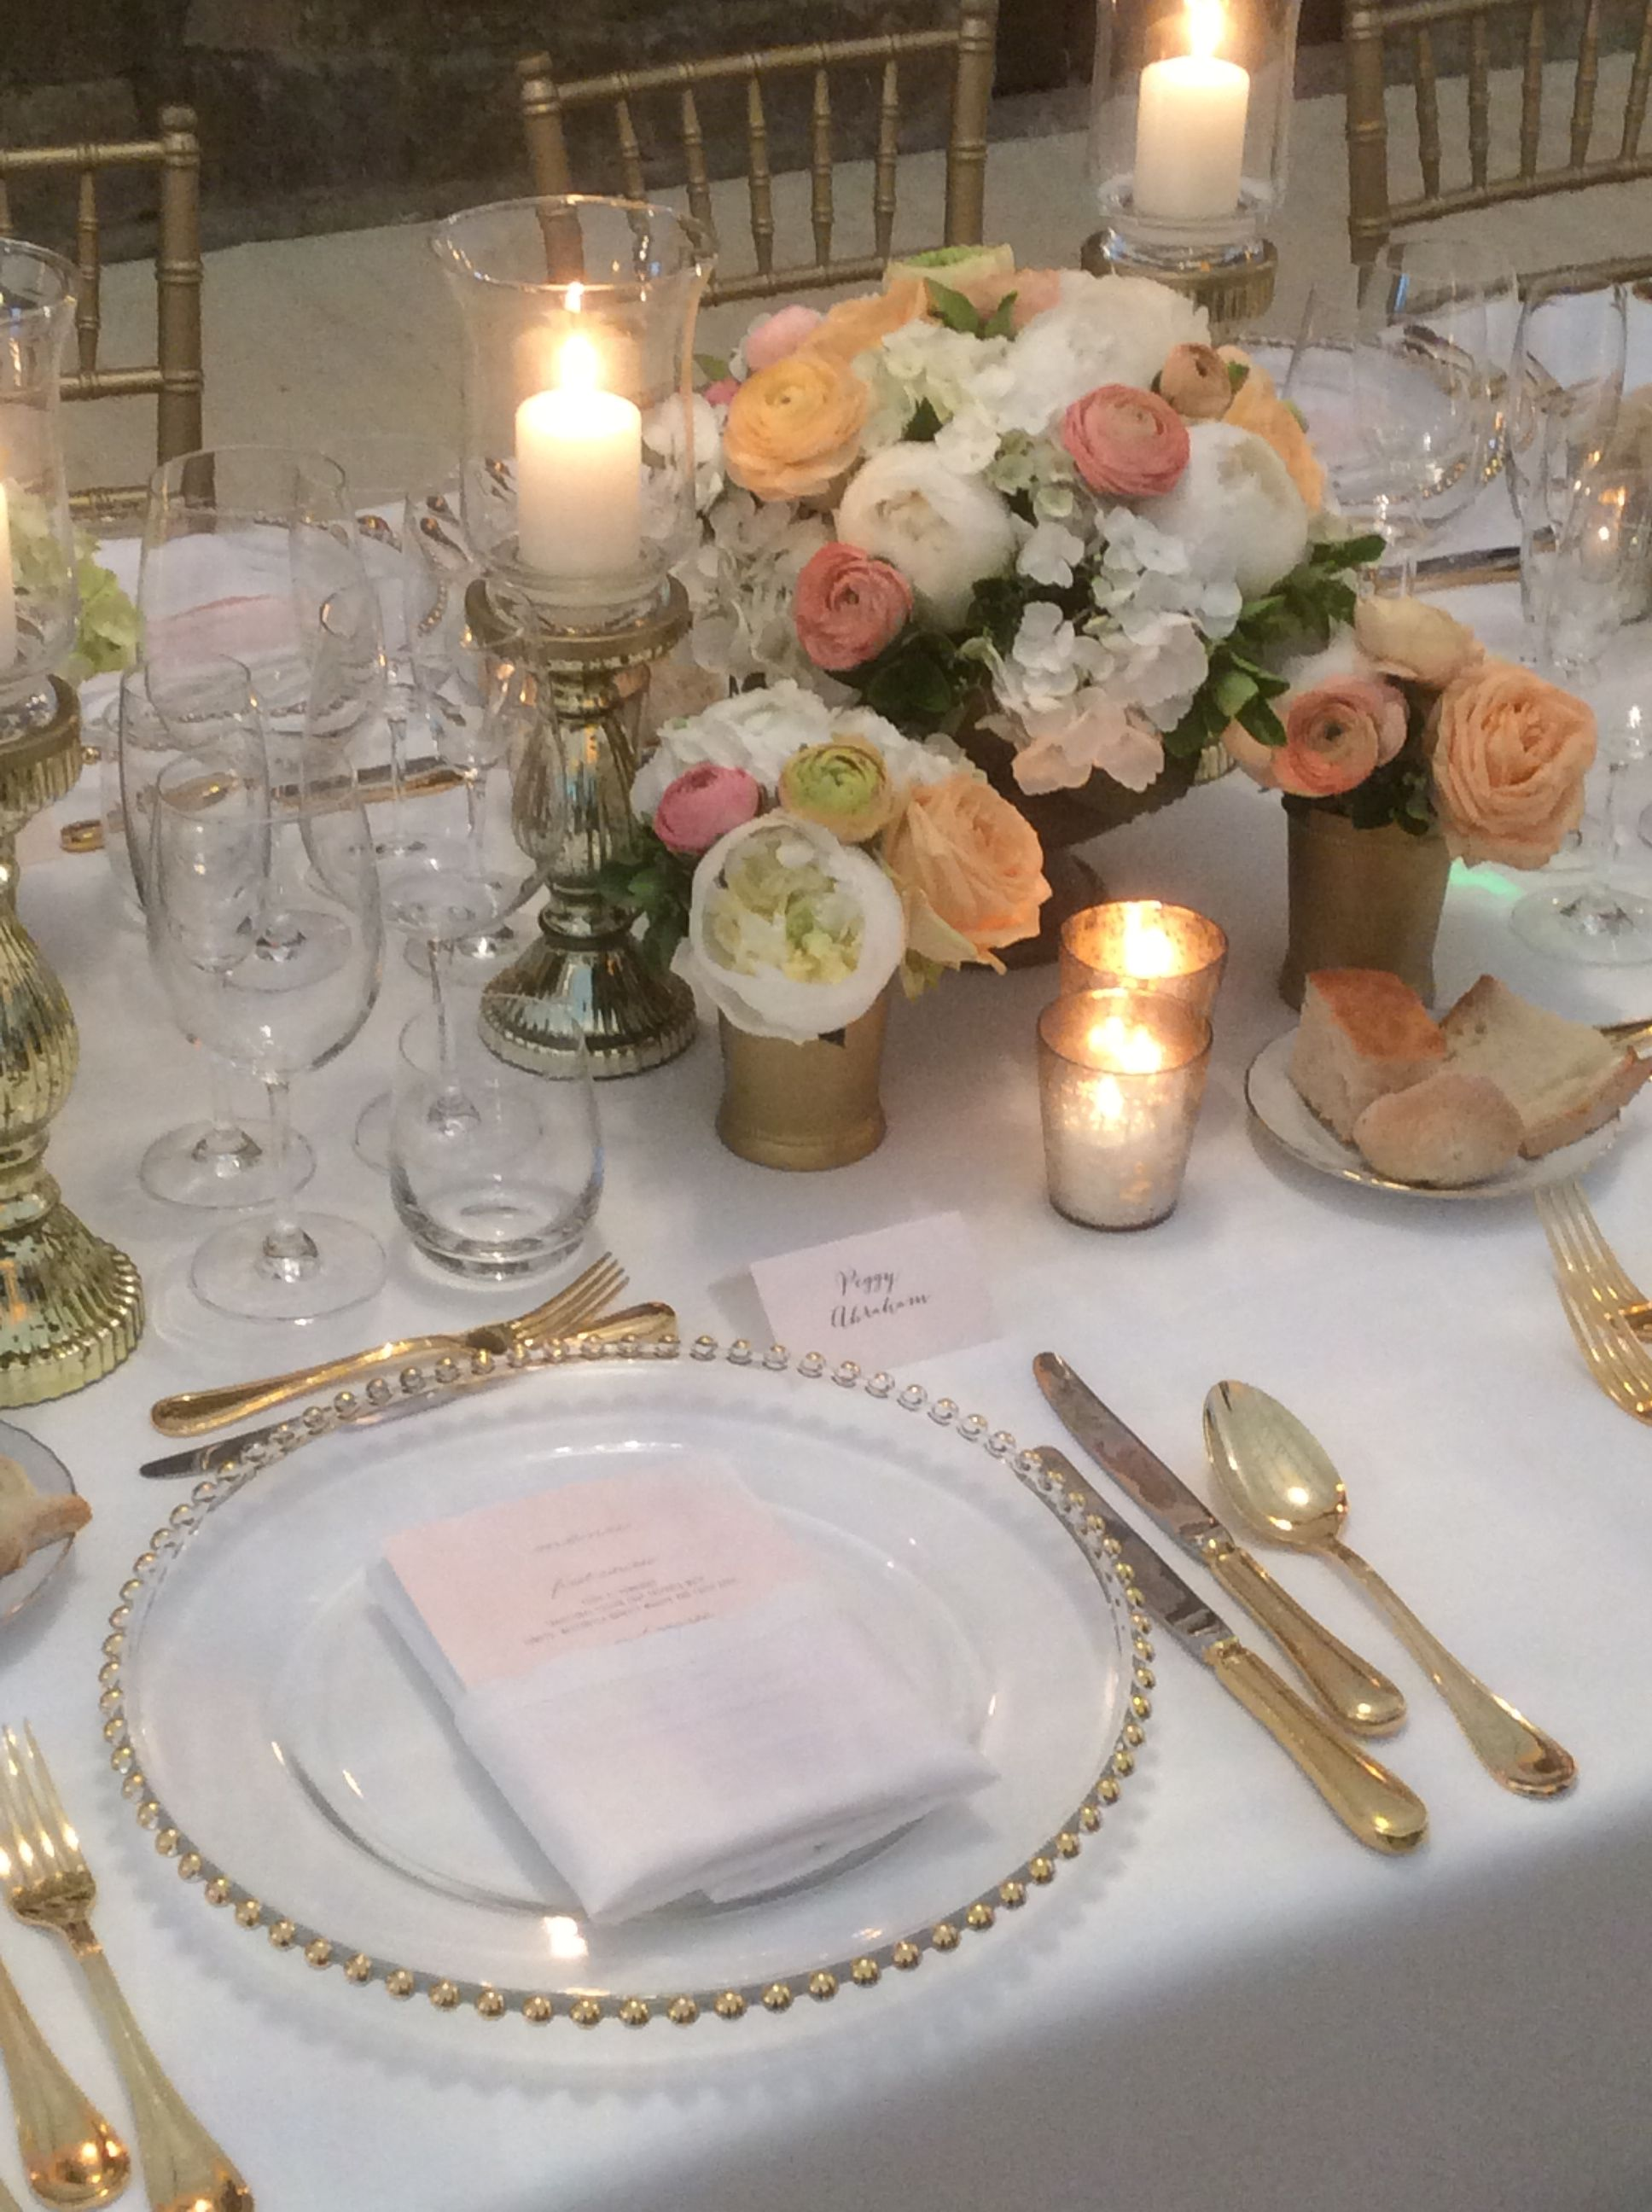 Elegant Pink and Gold table arrangements at Castello di Vincigliata #GuidiLenci and the team of www.weddingitaly.com